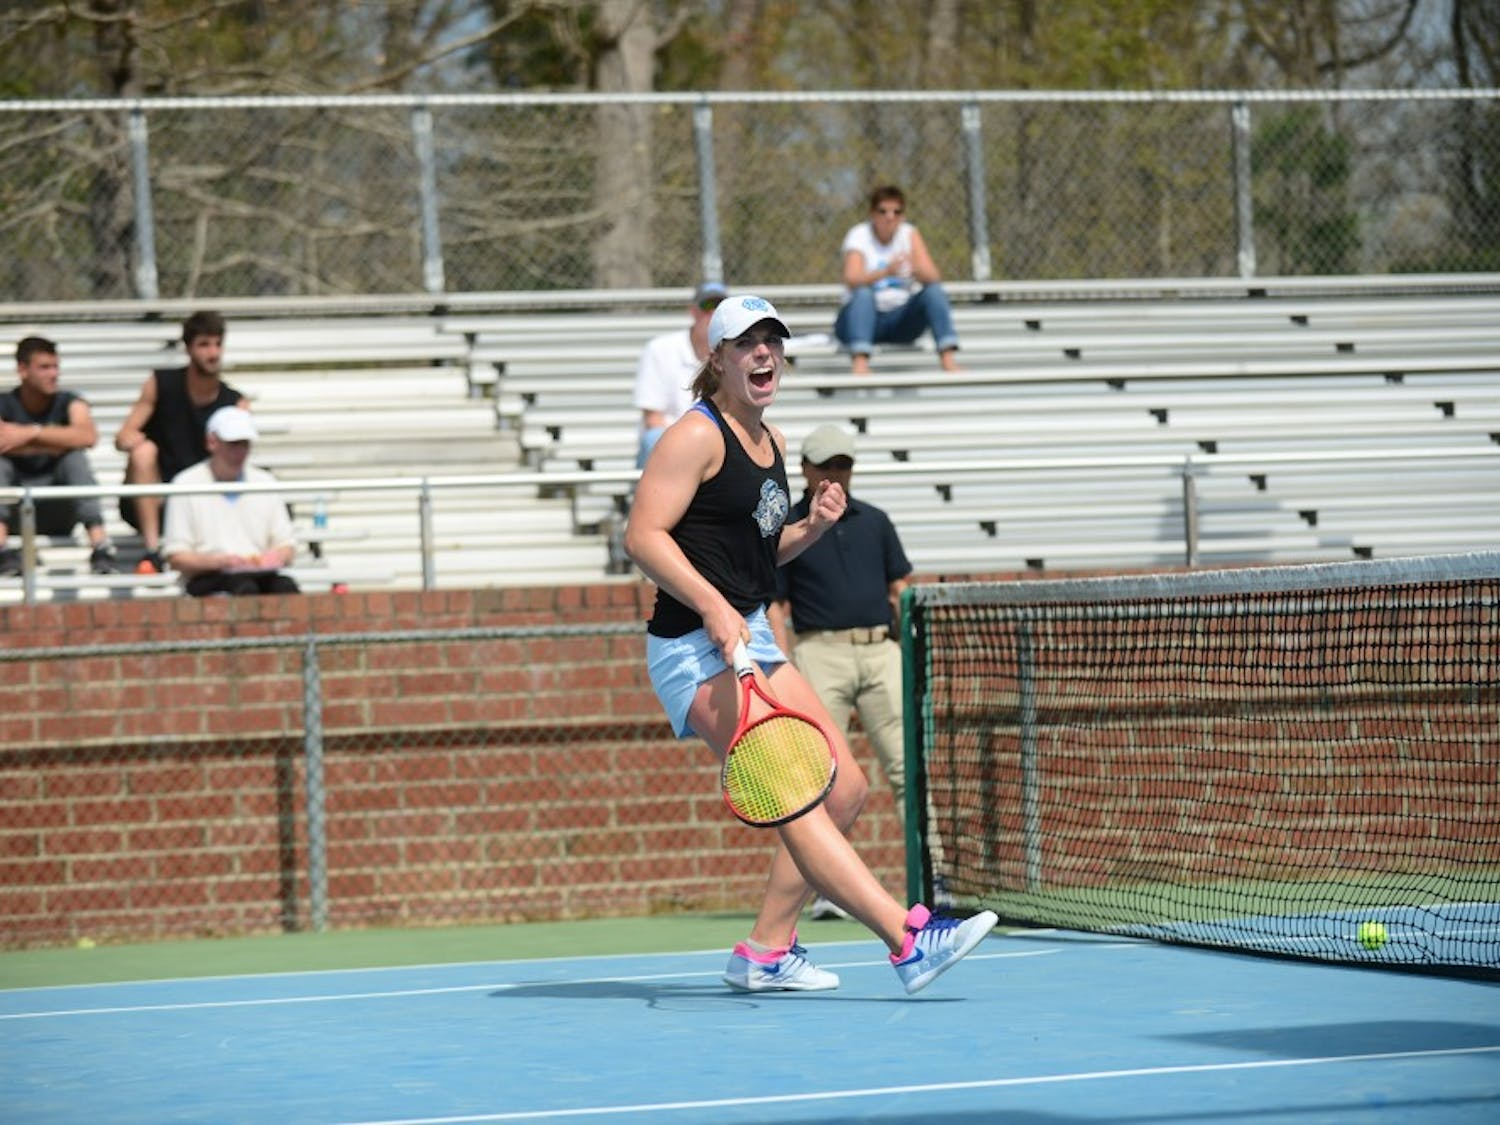 UNC women's tennis senior Jessie Aney celebrates during her doubles match against Wake Forest. UNC beat Wake Forest 7-0.